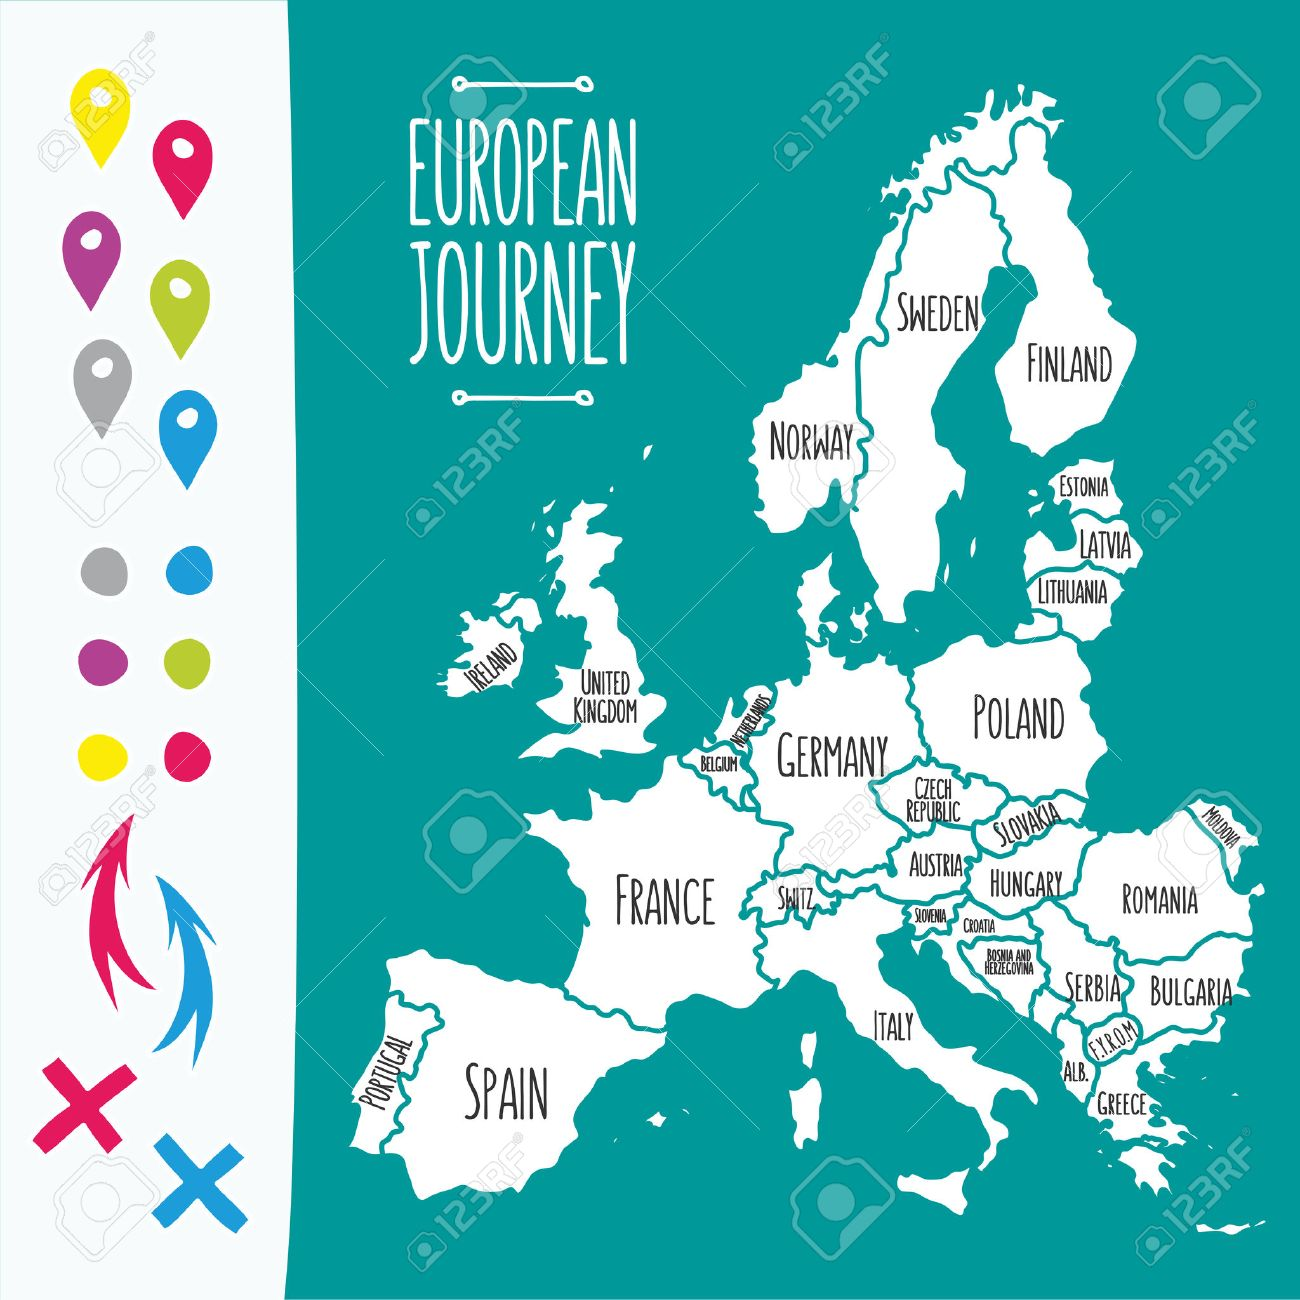 Vintage Hand Drawn Europe Travel Map With Pins Vector Illustration – Europe Map For Travel